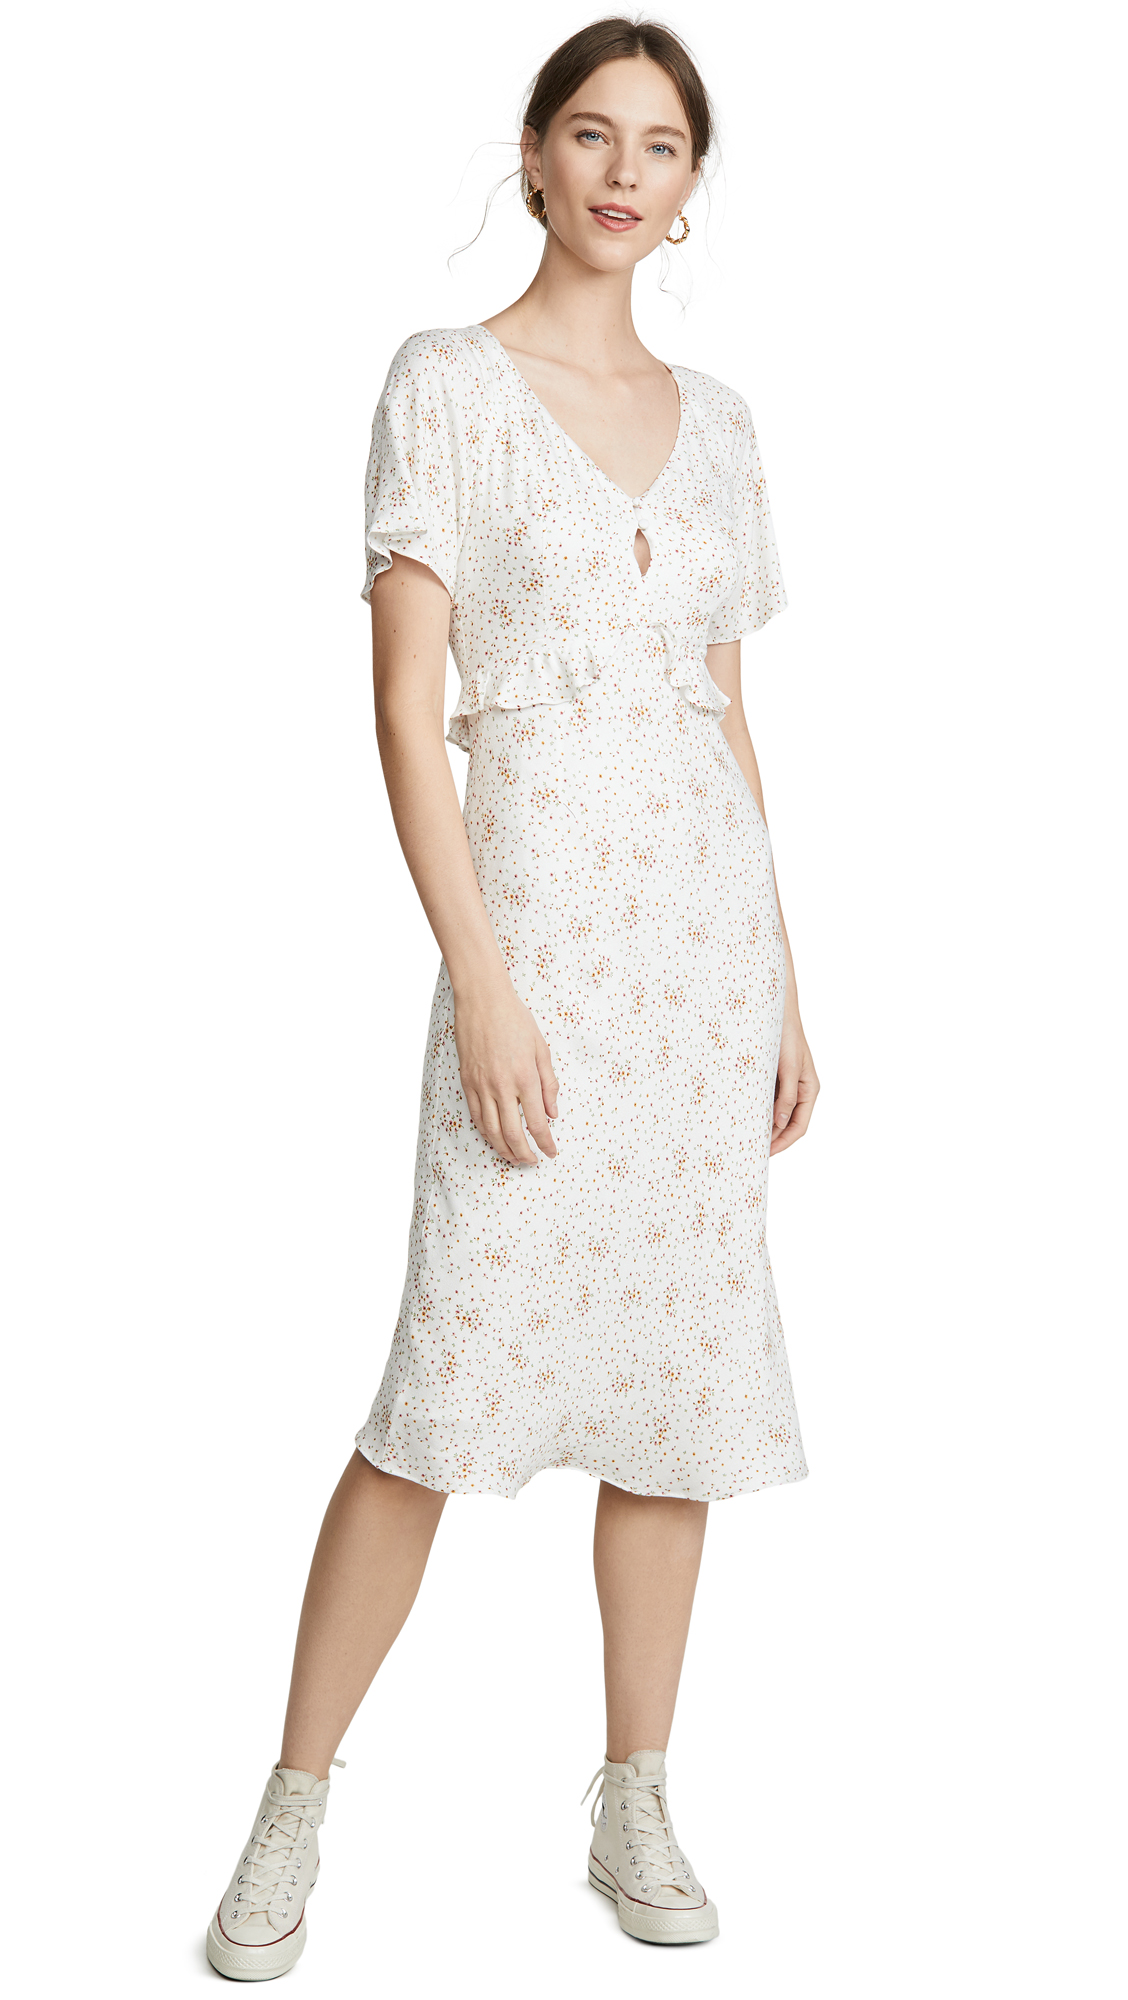 cupcakes and cashmere Delphine Dress